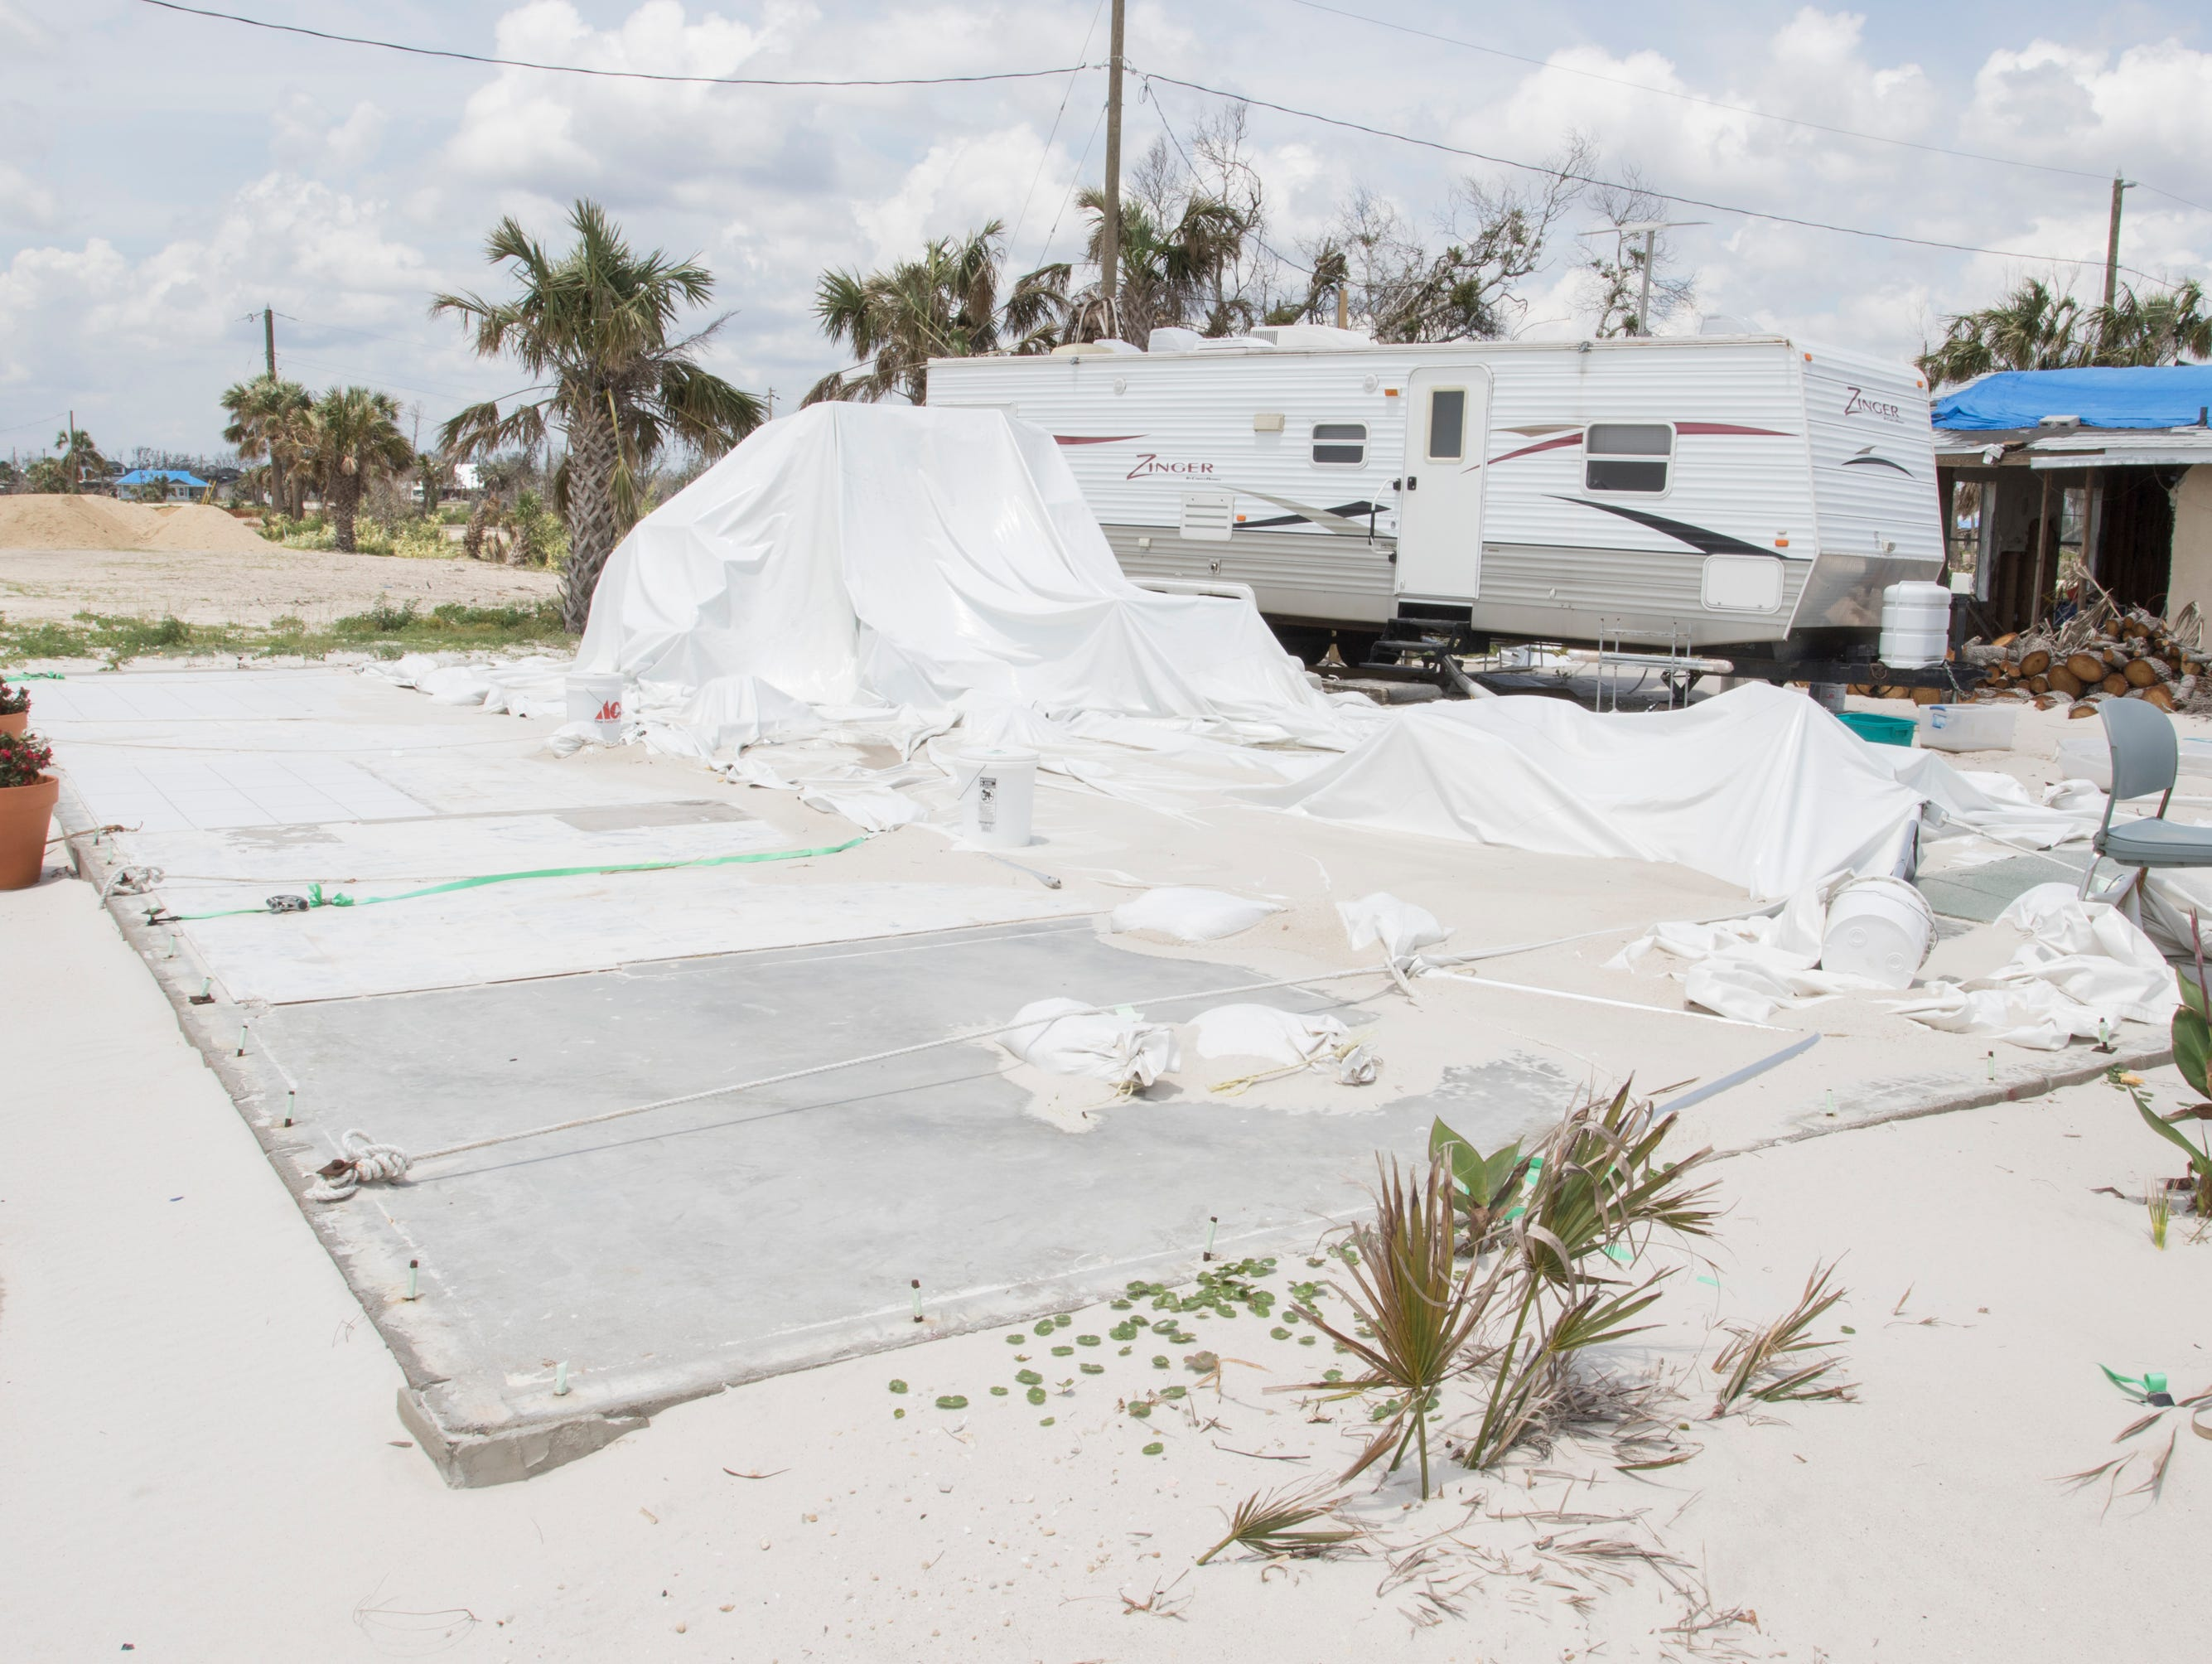 After also losing his house, David Gieseking, pastor of Living Water Church at the Beach, currently lives in an RV next to the foundation of his former church in Mexico Beach on Wednesday, May 8, 2019.